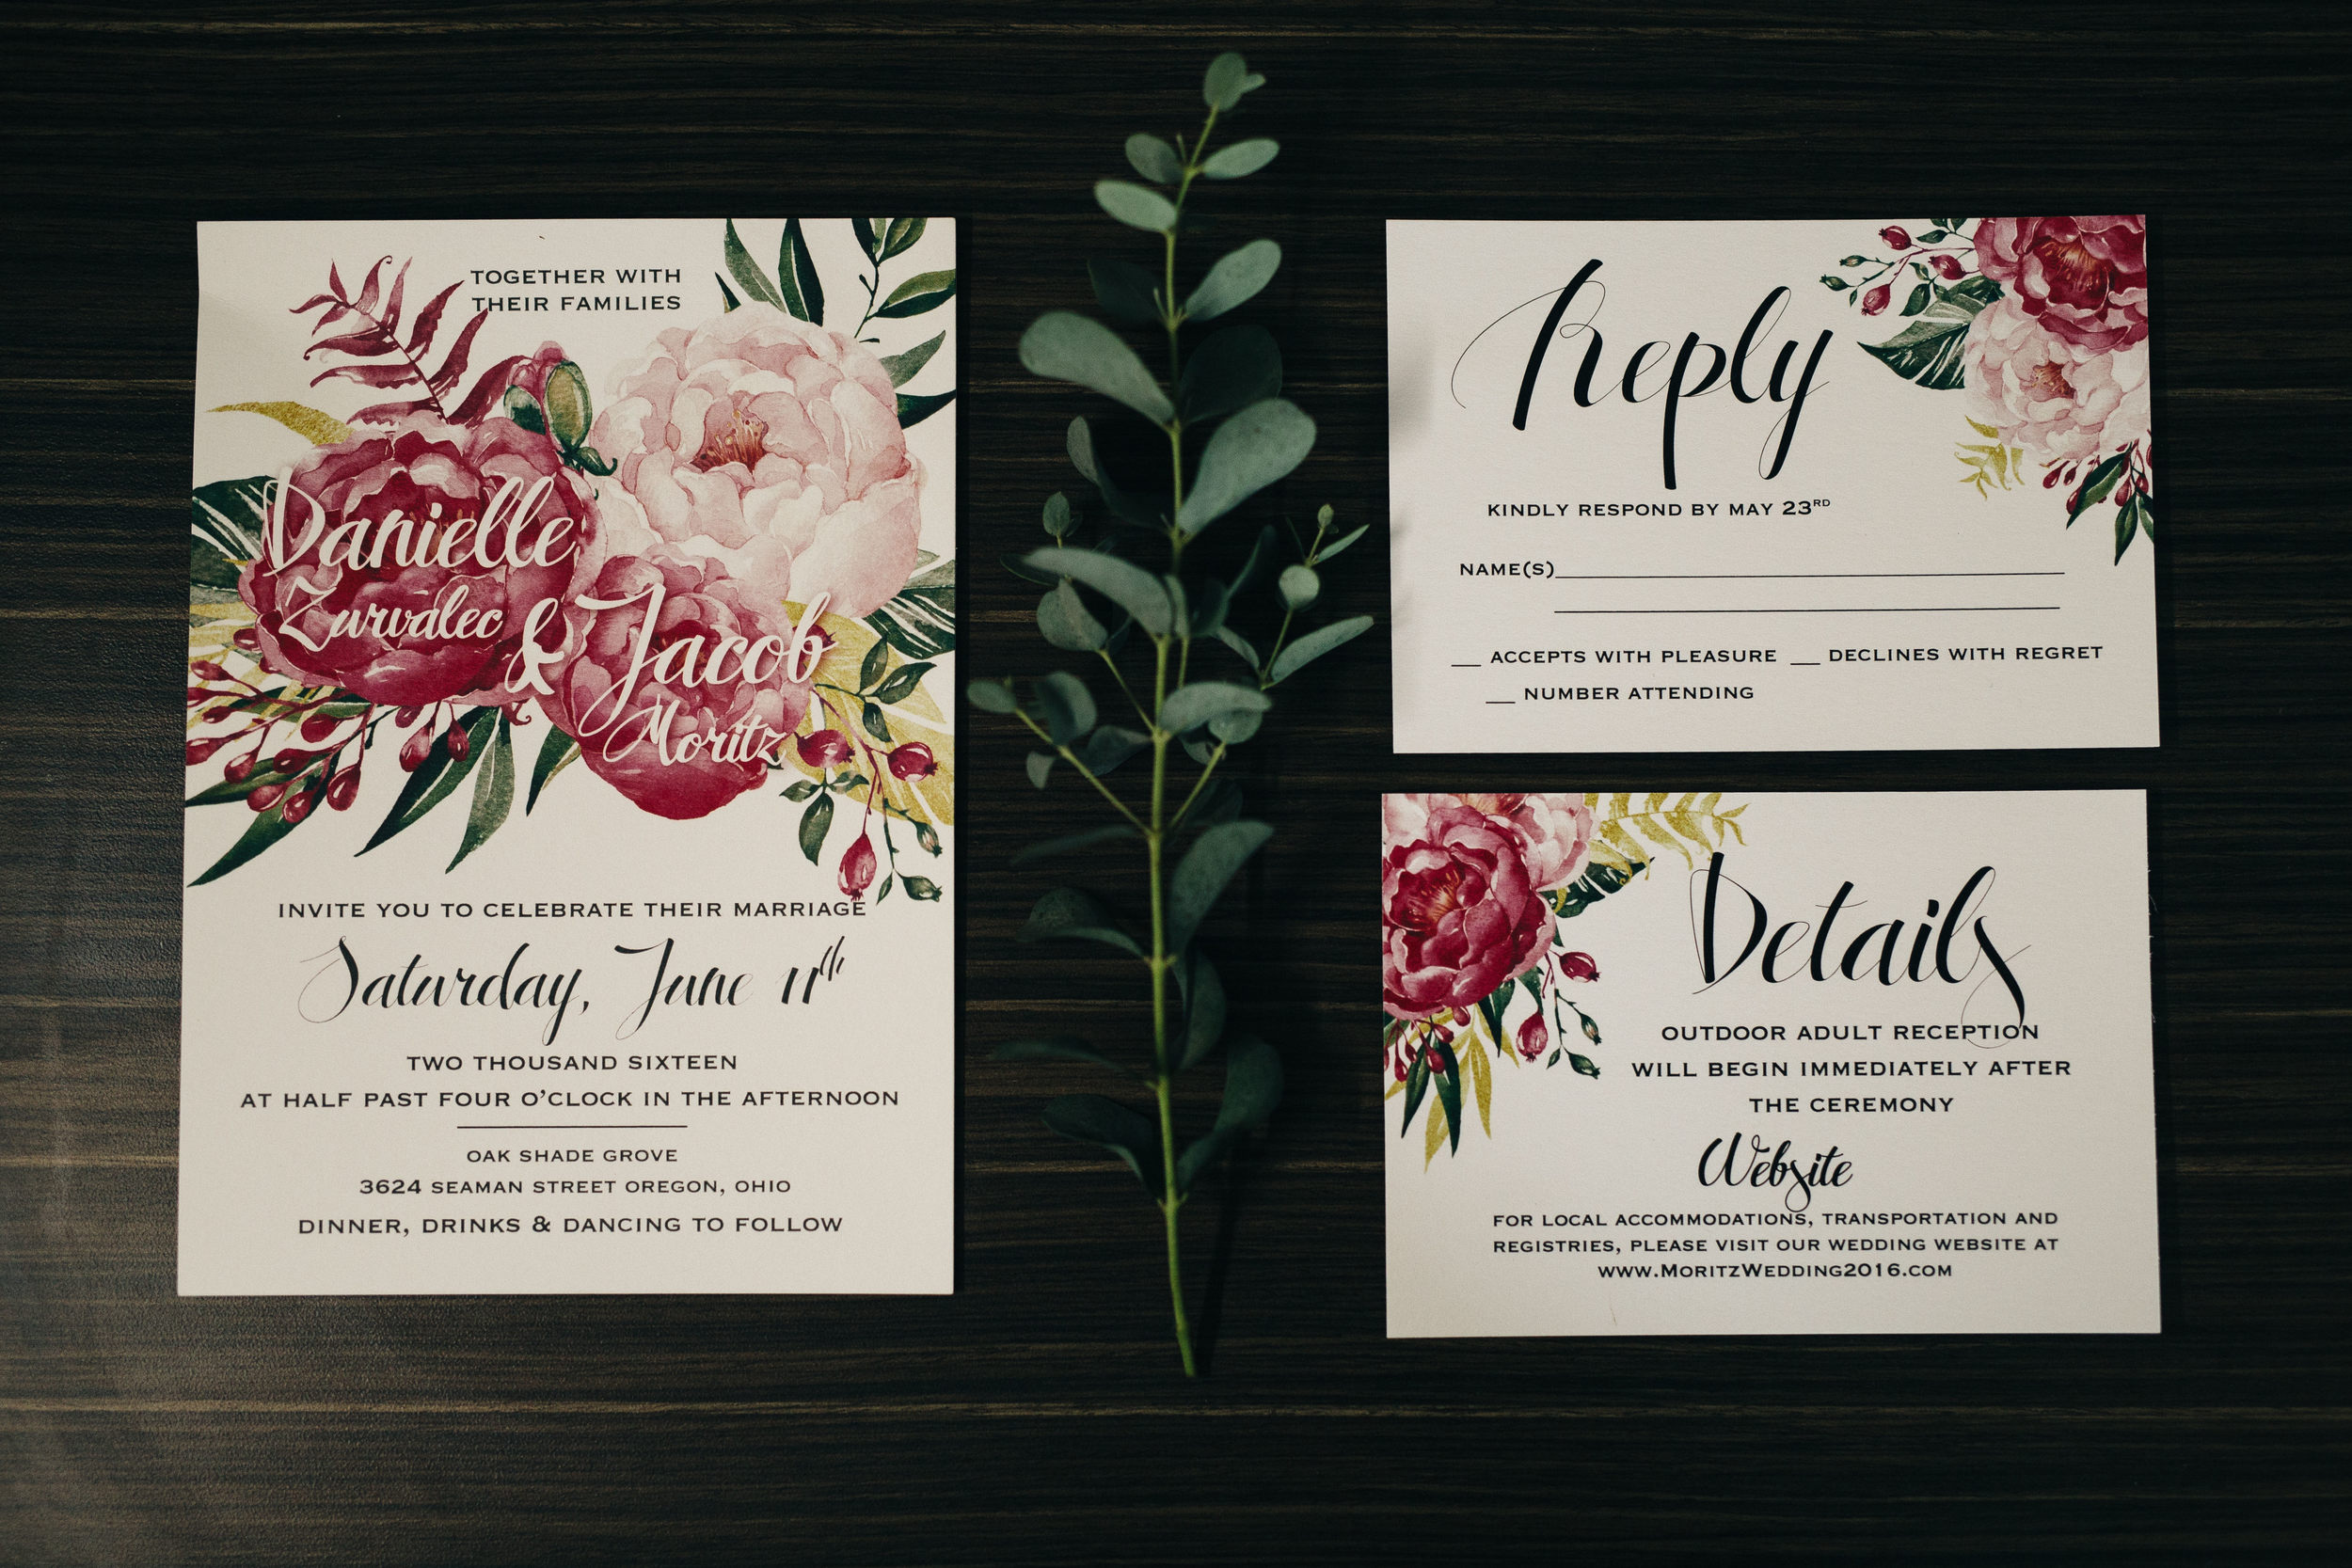 Floral designed wedding invitations from Etsy.